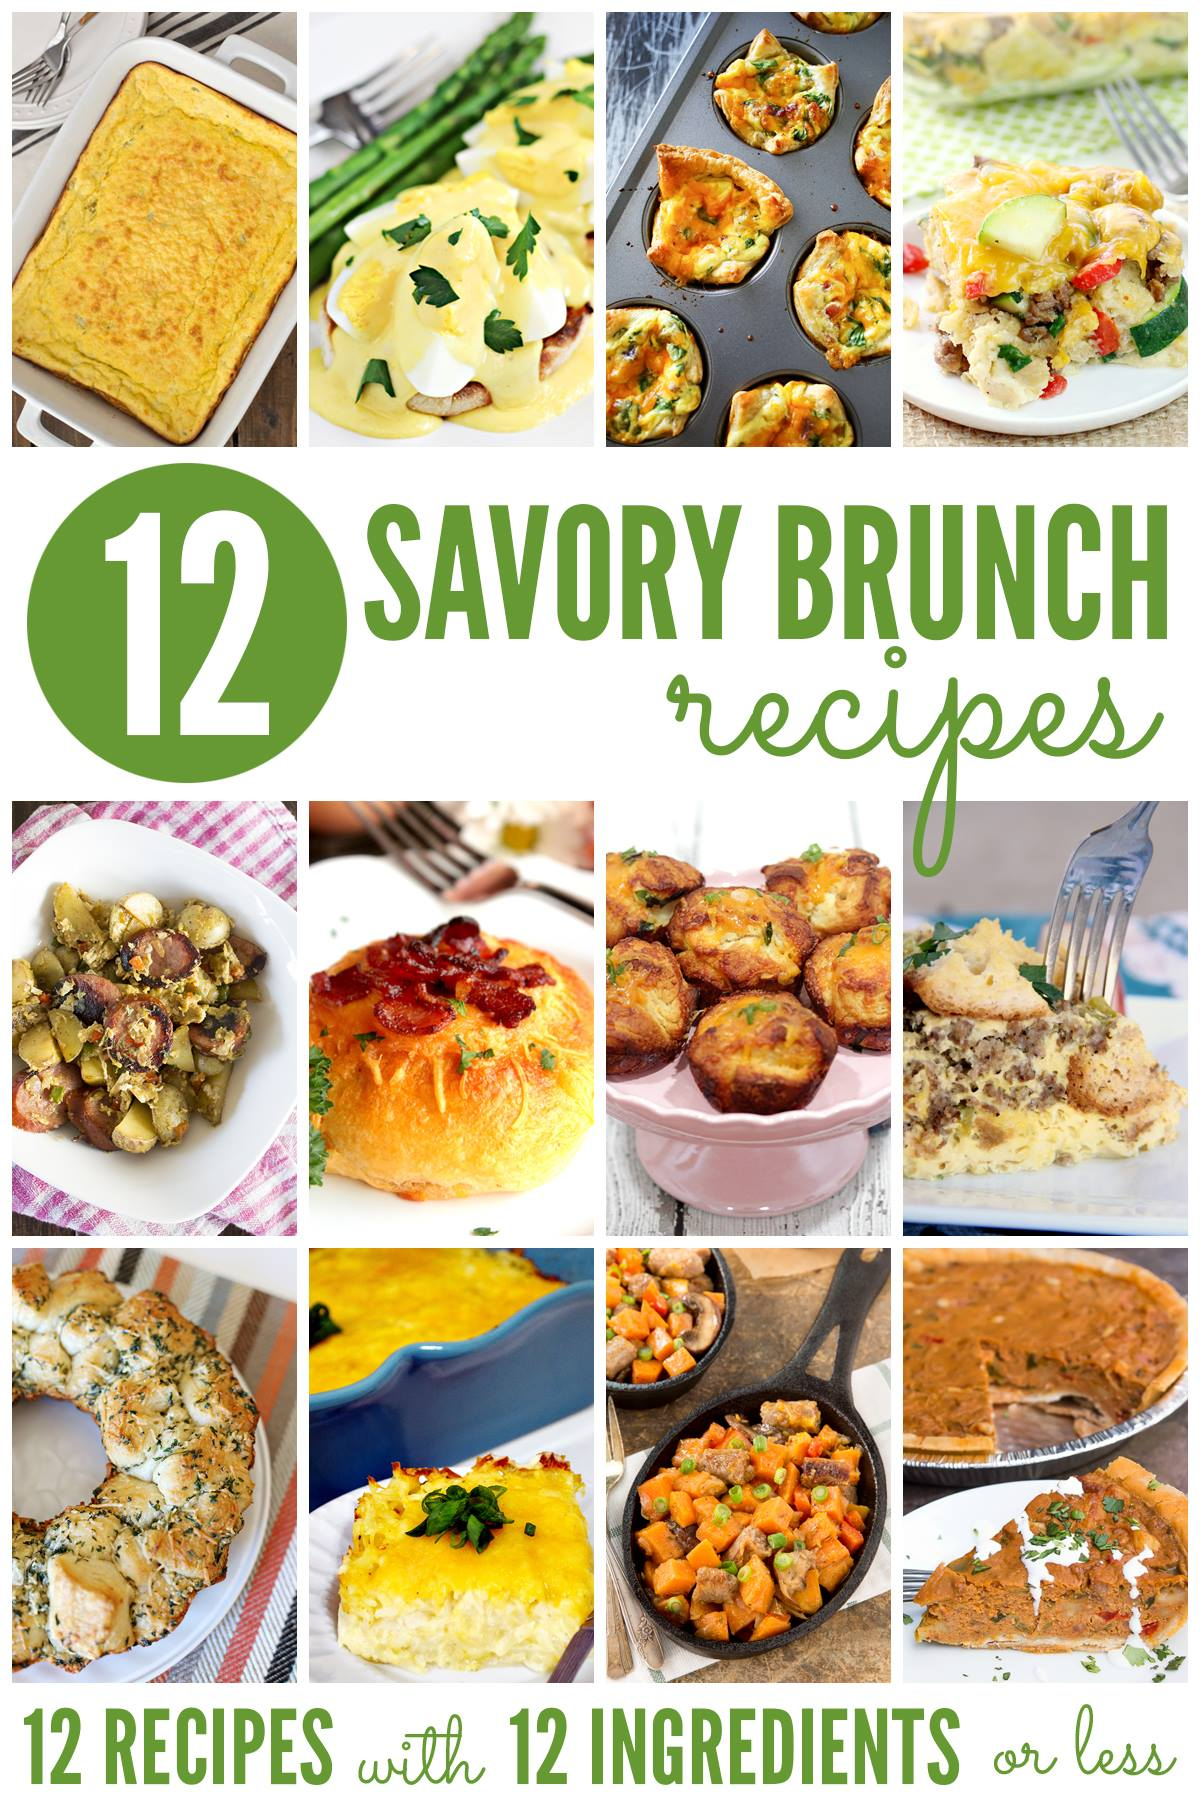 A delicious list of Savory Brunch Recipes!